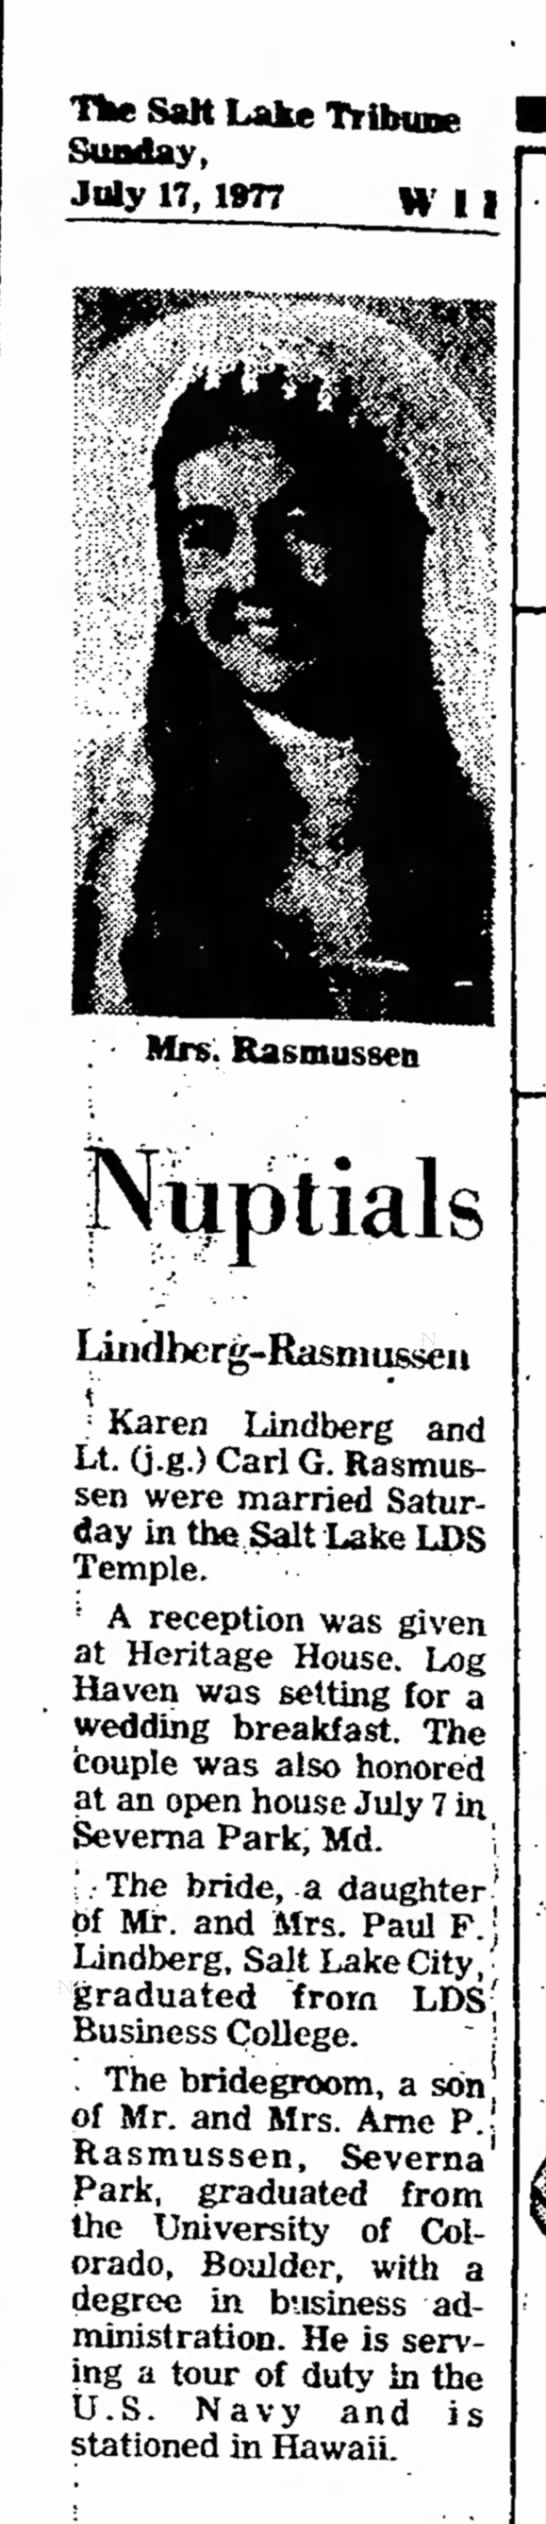 Karen Lindberg wedding announcement -